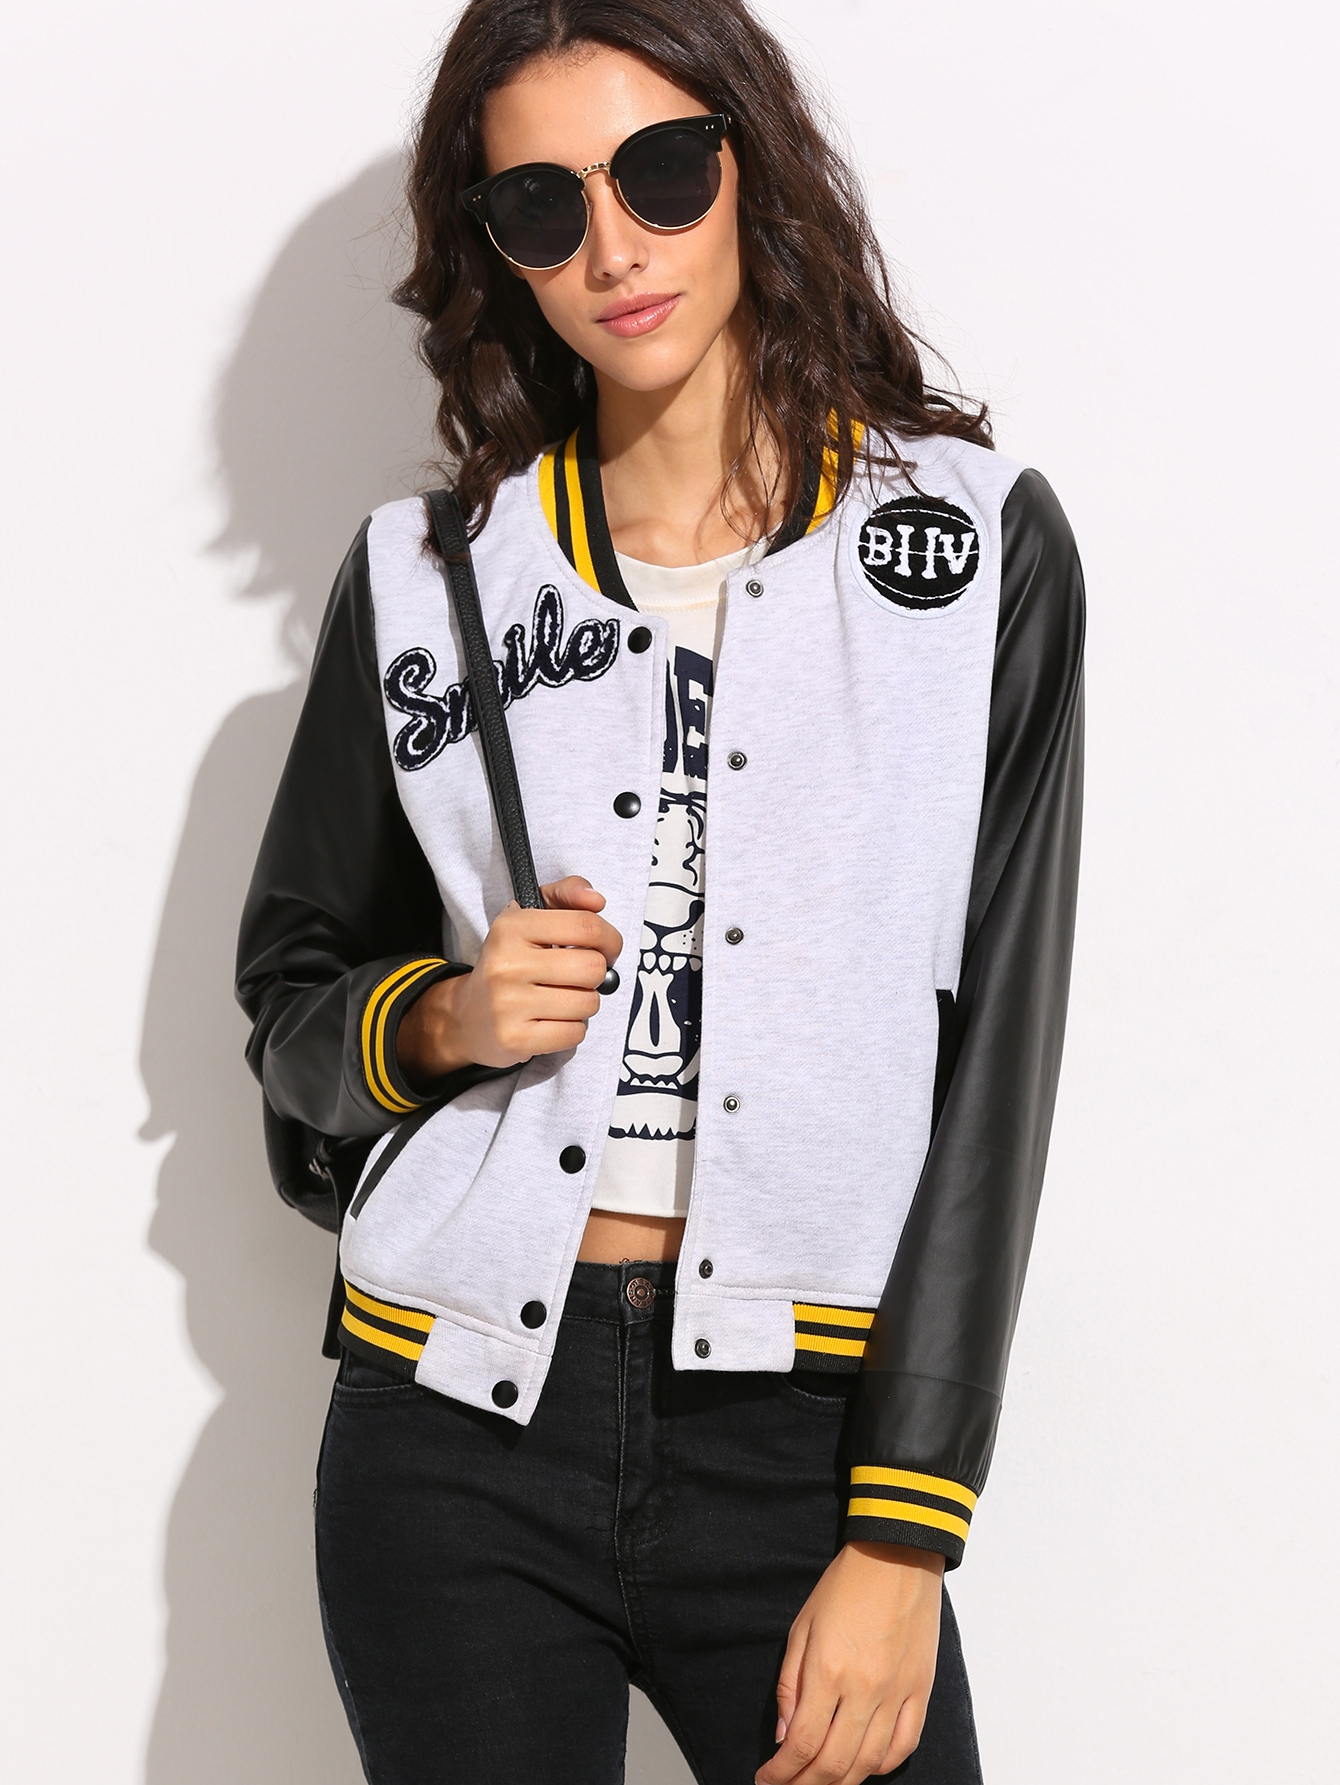 Contrast Sleeve Striped Trim Baseball JacketContrast Sleeve Striped Trim Baseball Jacket<br><br>color: Multi Color<br>size: S,XS